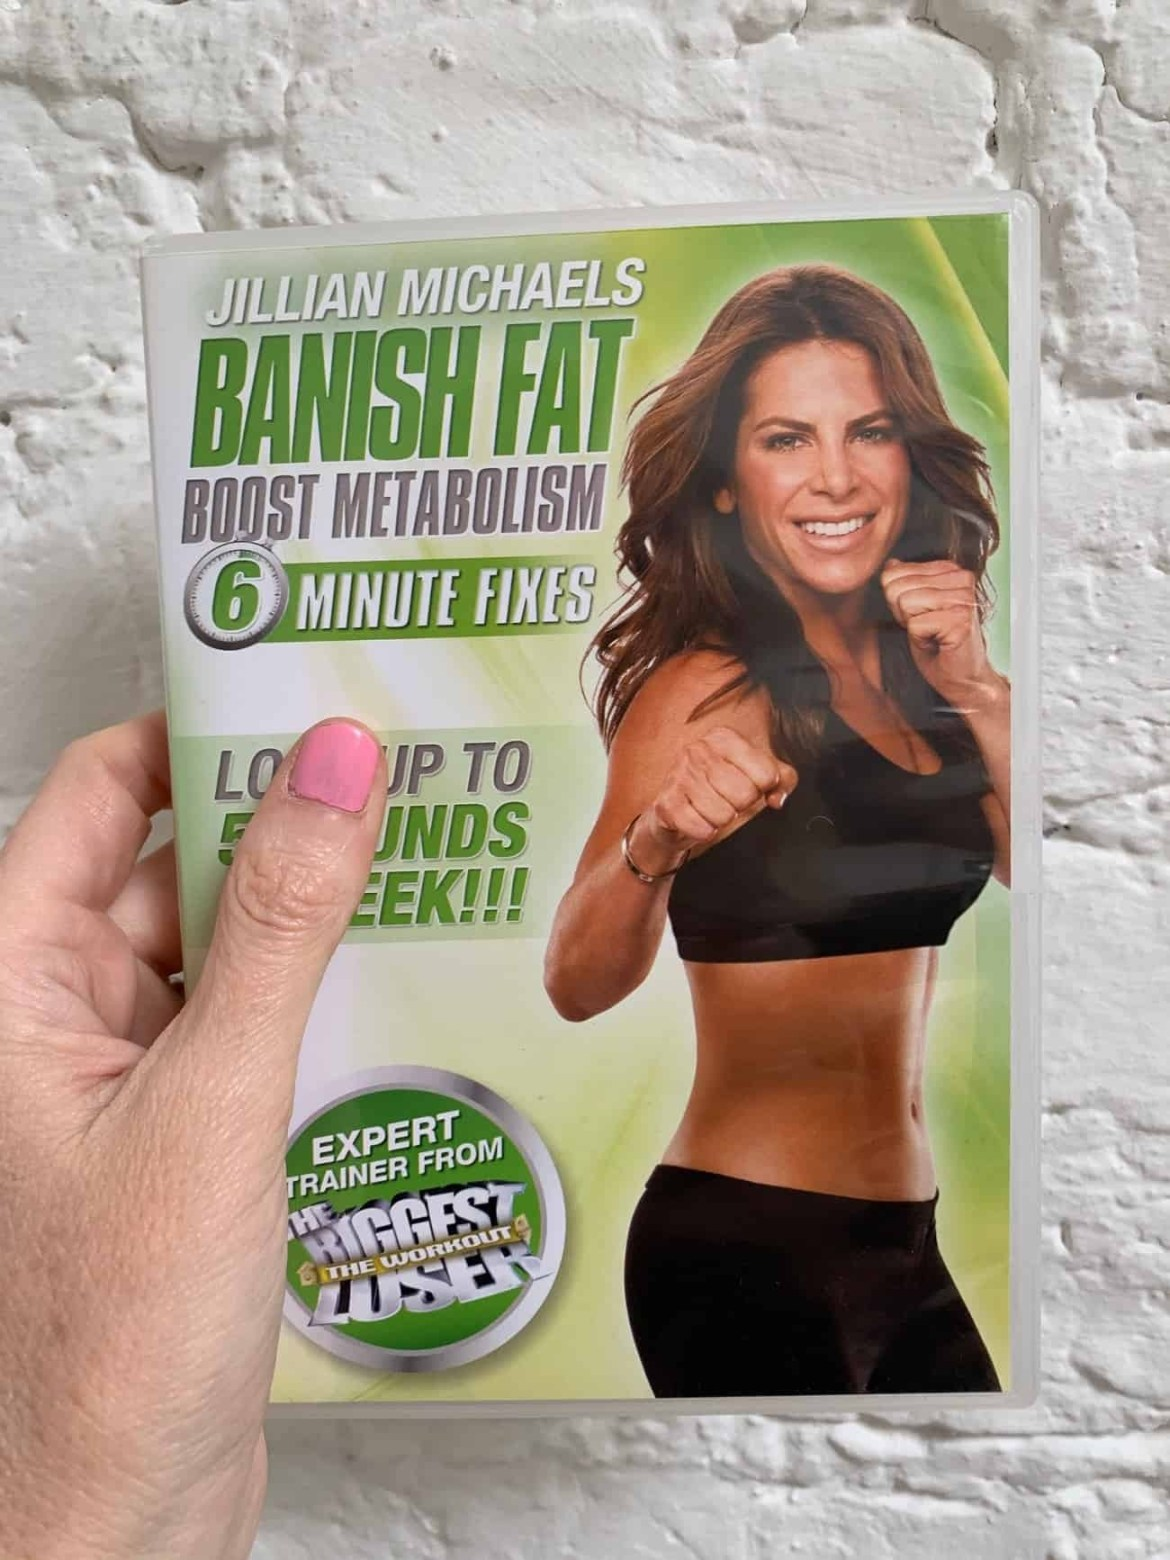 Jillian Michaels workout DVD